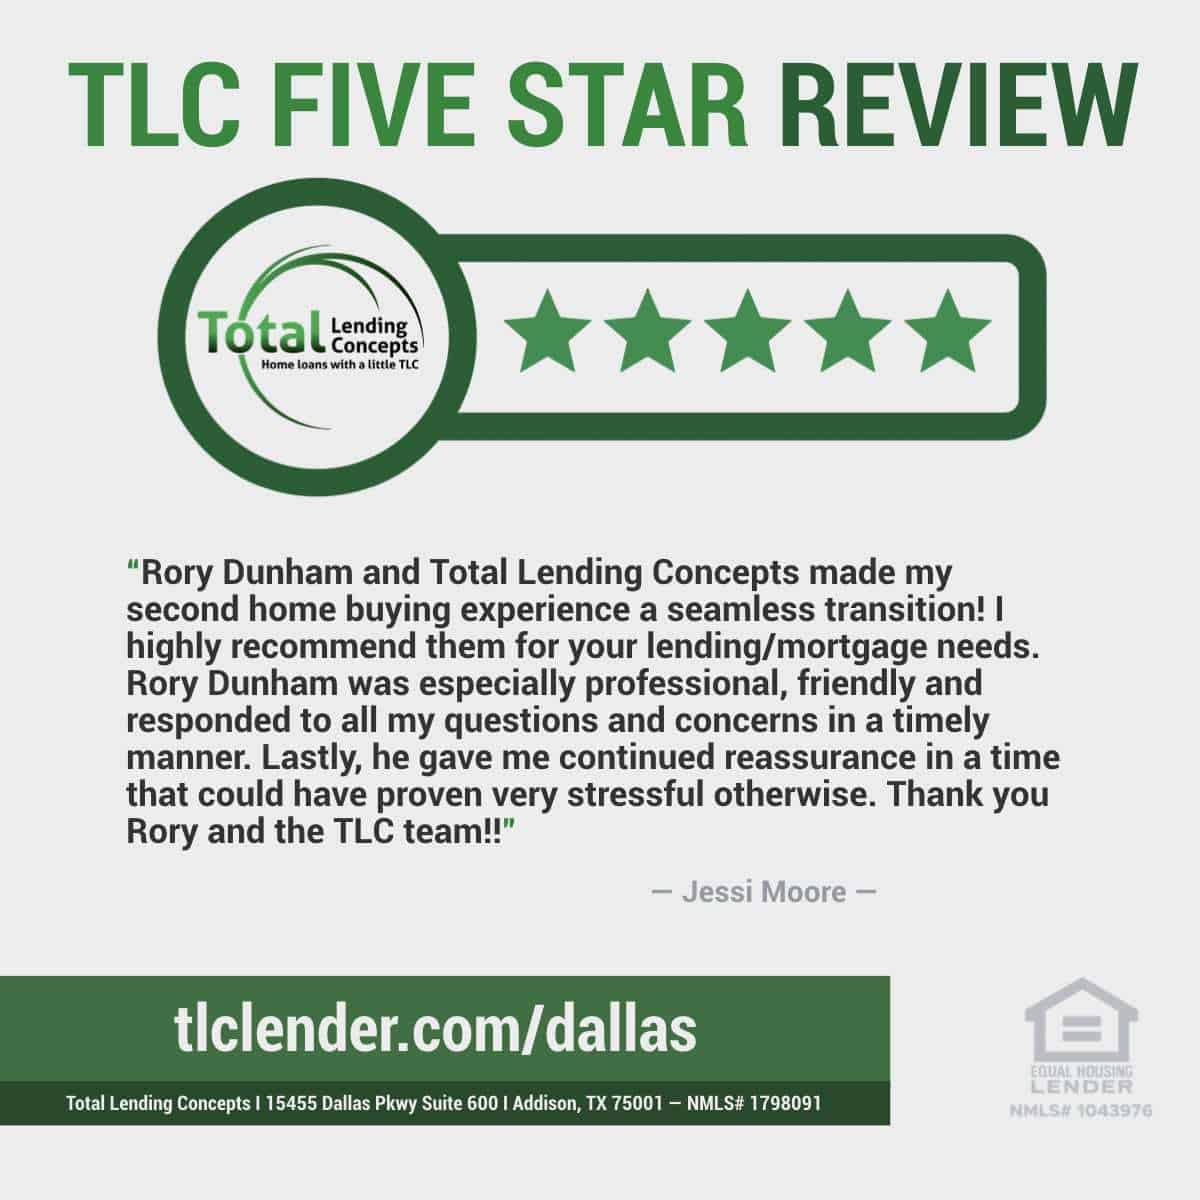 Total-Lending-Concepts-Five-Star-Review-Jessi-Moore-in-Addison-Texas-for-Rory-Dunham-Home-Mortgage